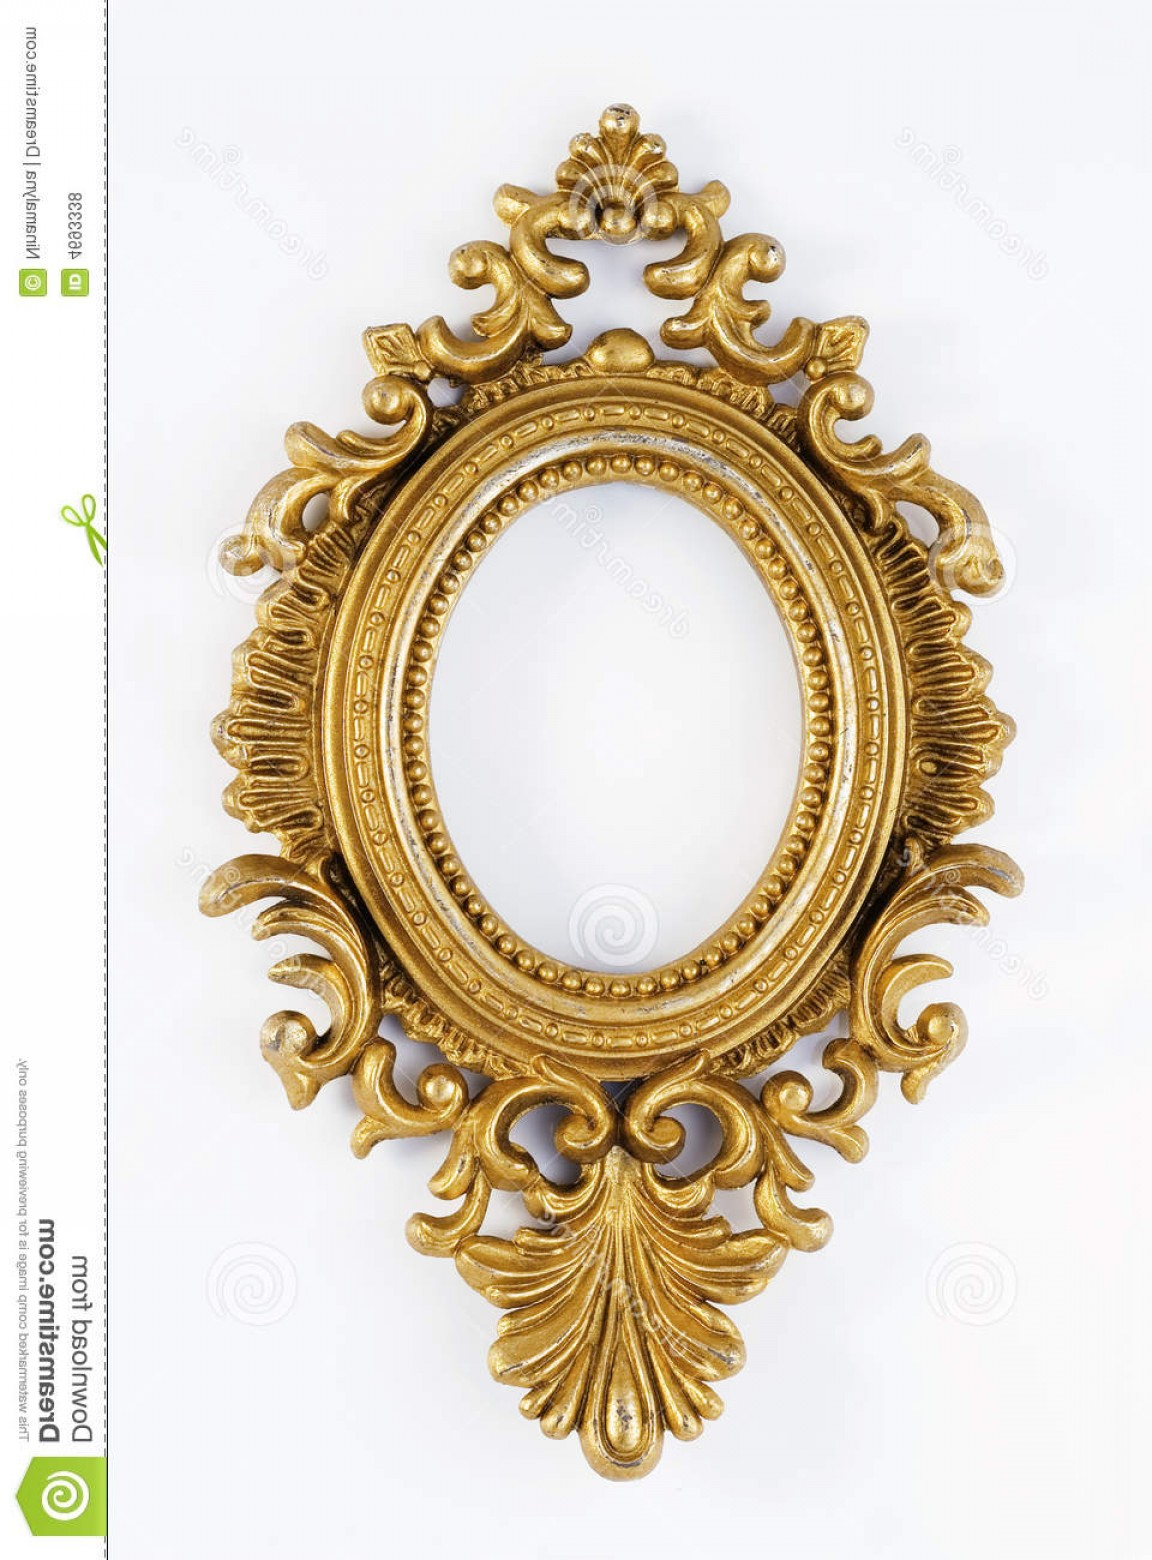 1152x1560 Royalty Free Stock Photos Oval Vintage Gold Ornate Frame Image